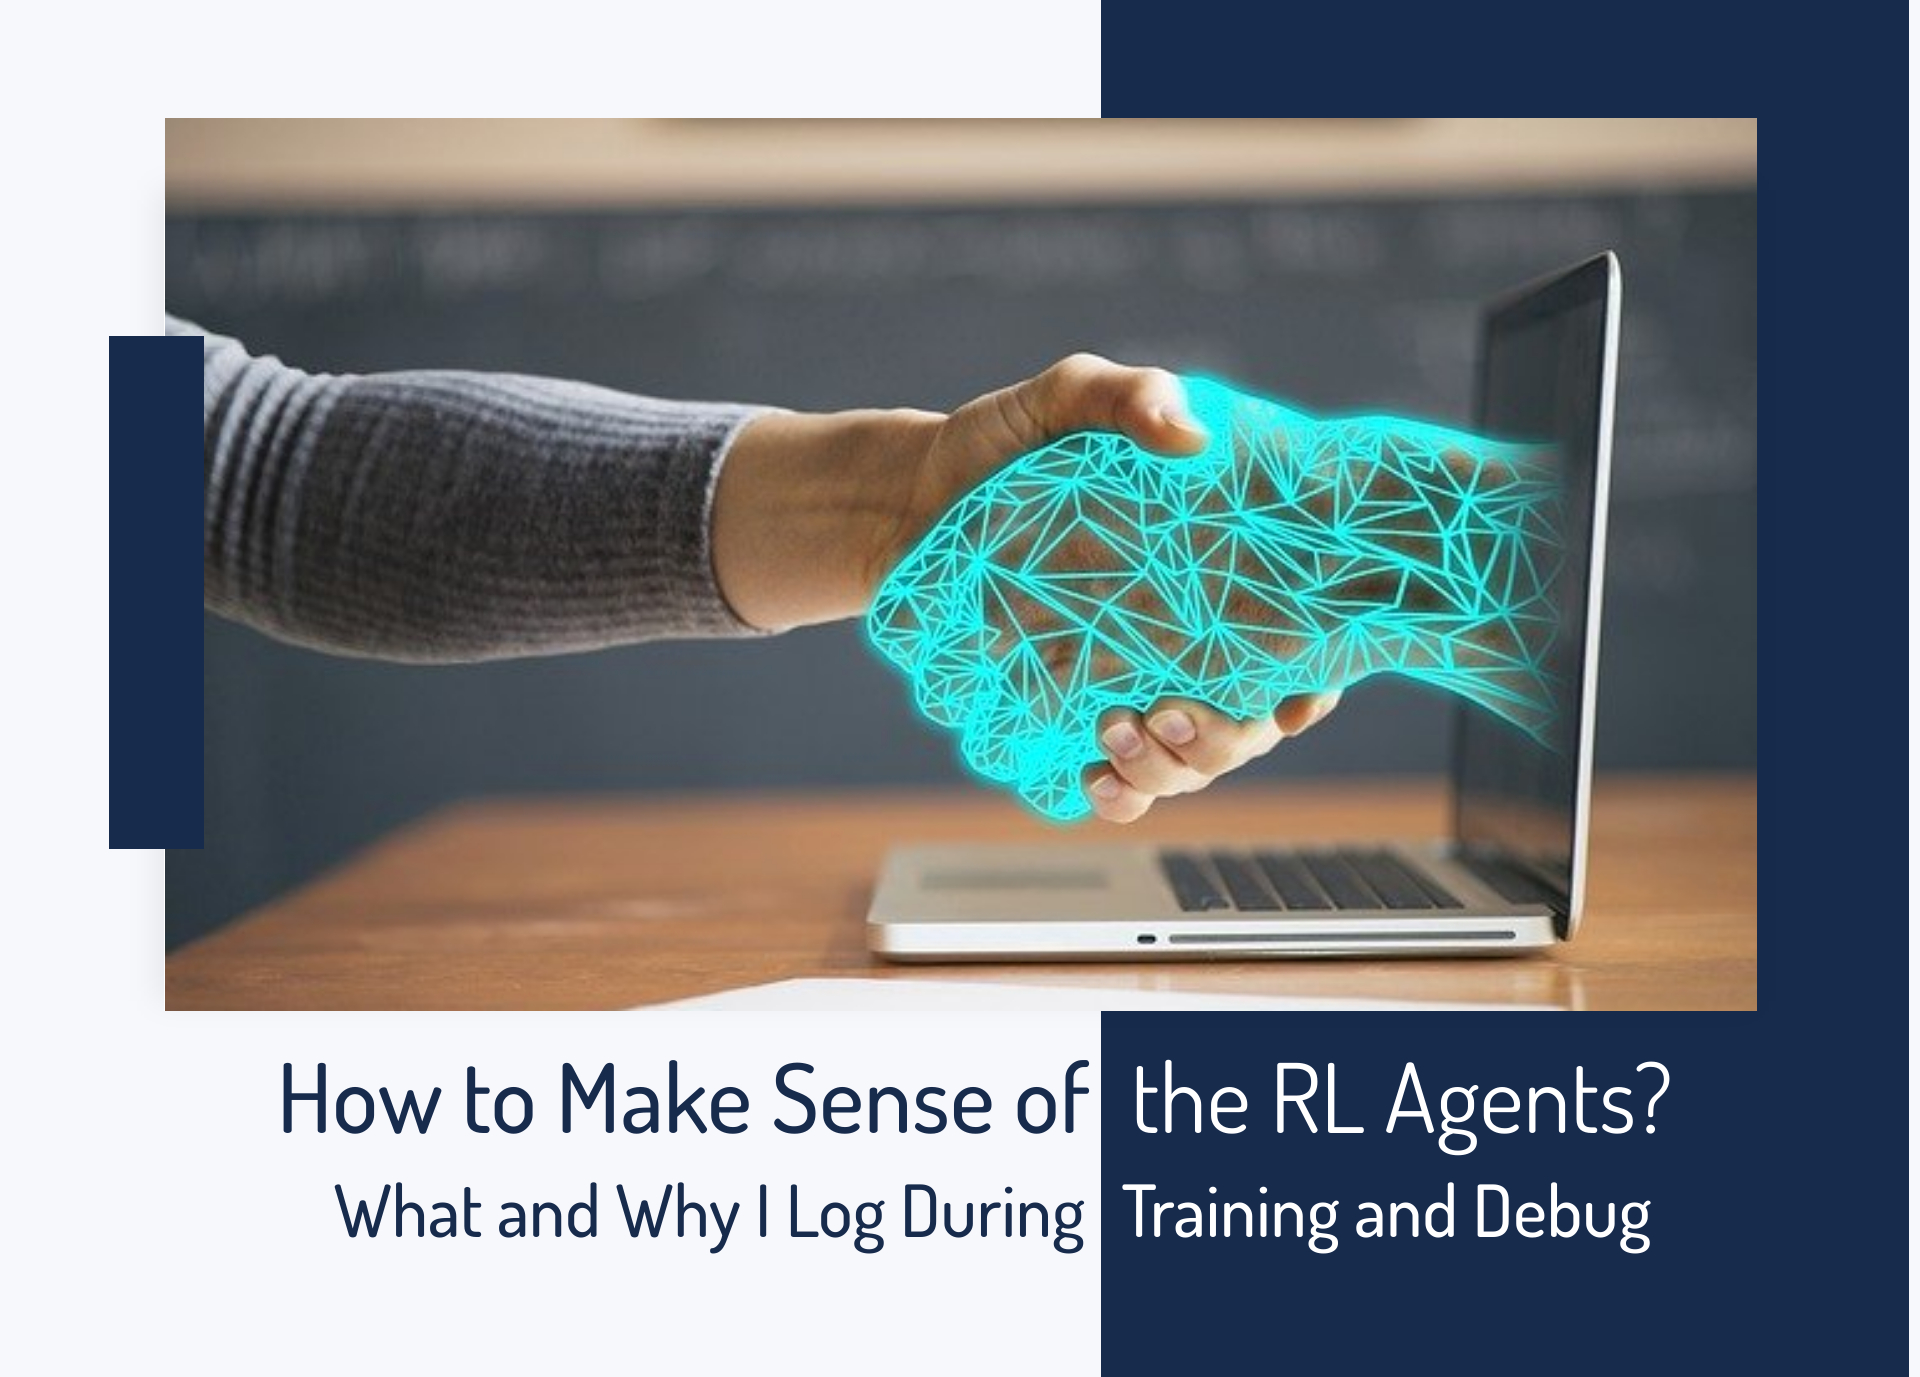 How to Make Sense of the Reinforcement Learning Agents?